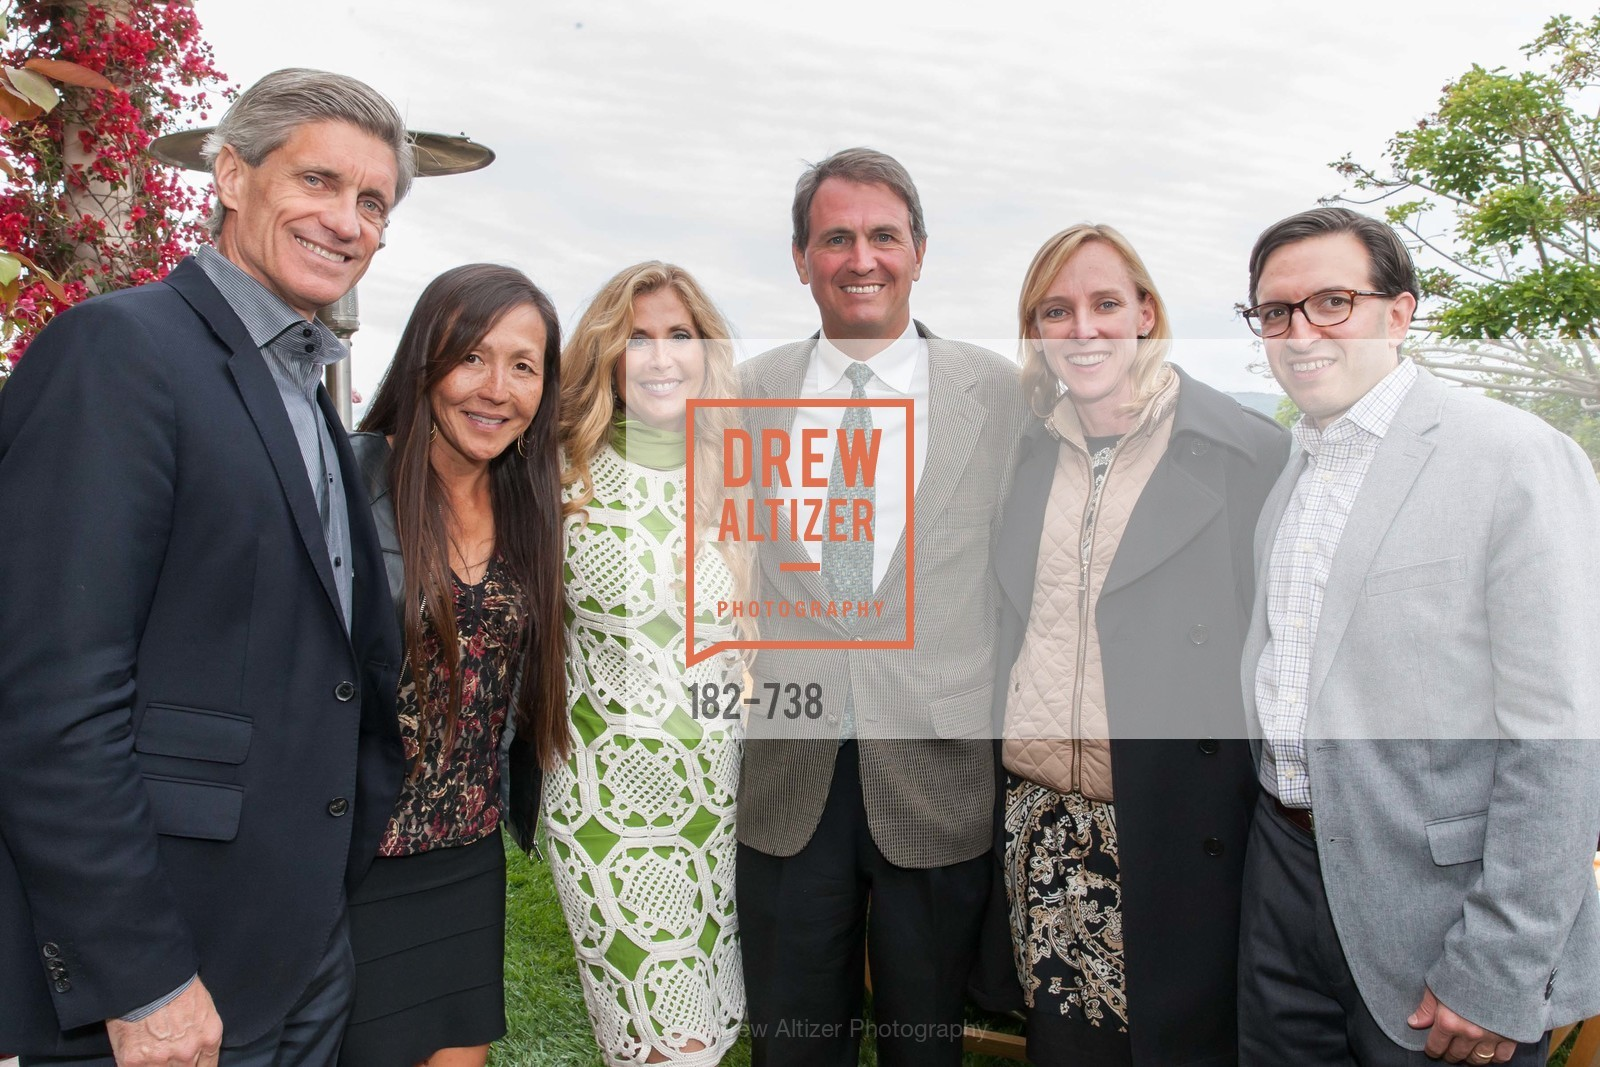 Frank Longo, Anne Longo, Sherry Cagan, Laird Cagan, Nicole Rubin, Amir Rubin, LymeAid 2015, US, May 18th, 2015,Drew Altizer, Drew Altizer Photography, full-service agency, private events, San Francisco photographer, photographer california